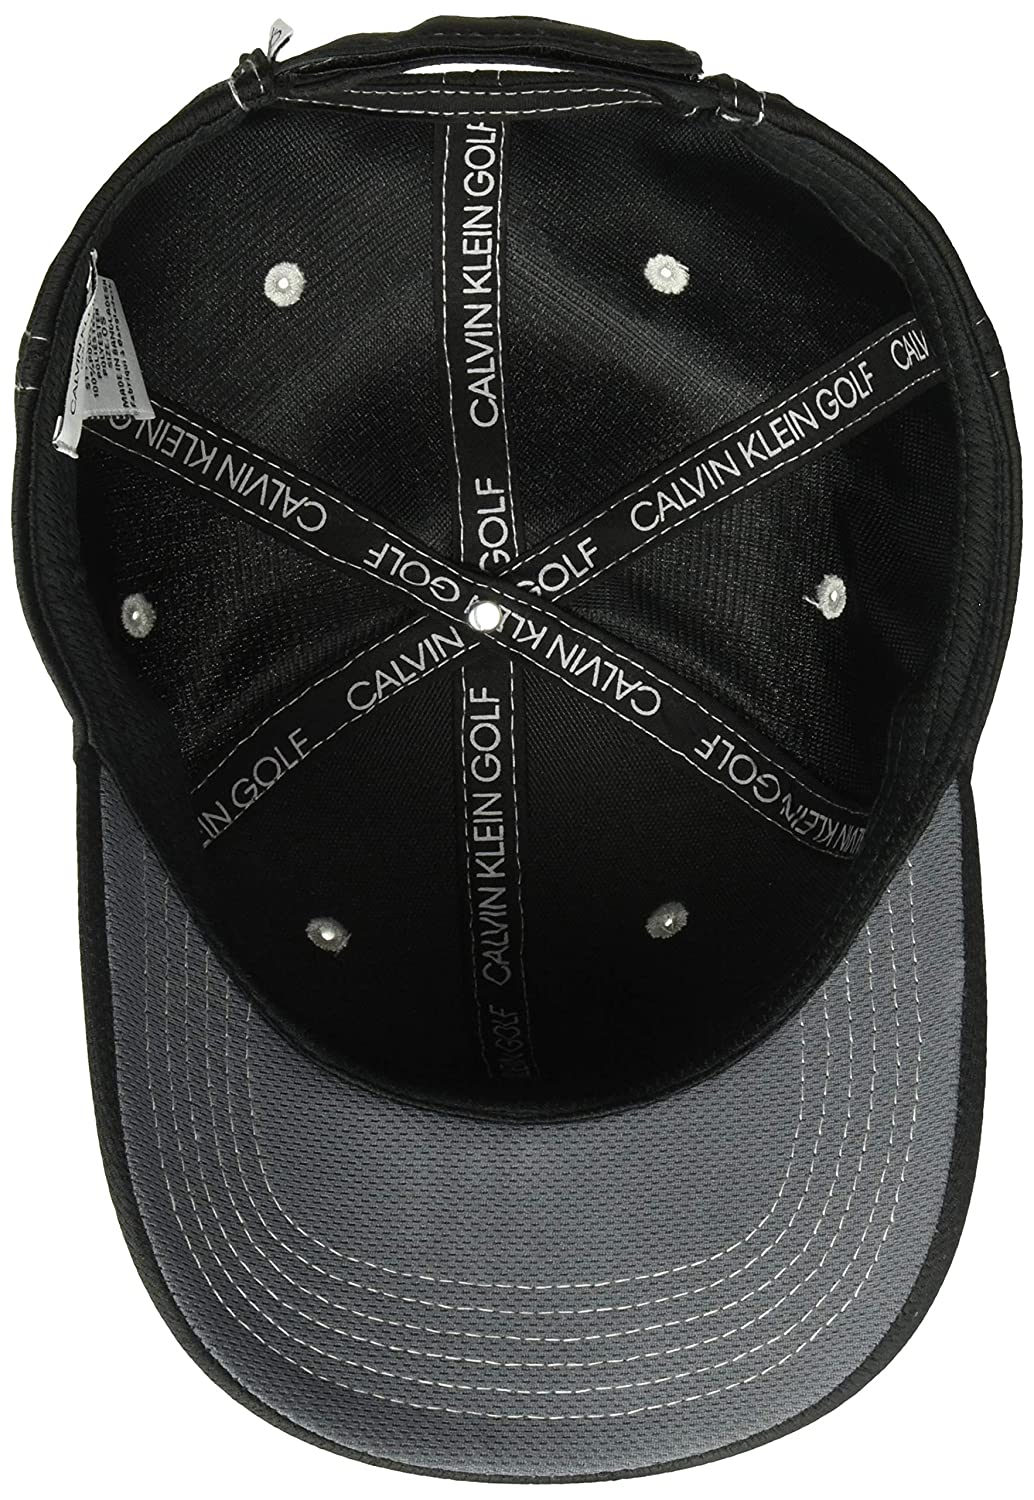 71ca2fef080 Calvin Klein Mens 2018 Performance Mesh Baseball Cap - Black Silver - One  Size  Amazon.co.uk  Clothing